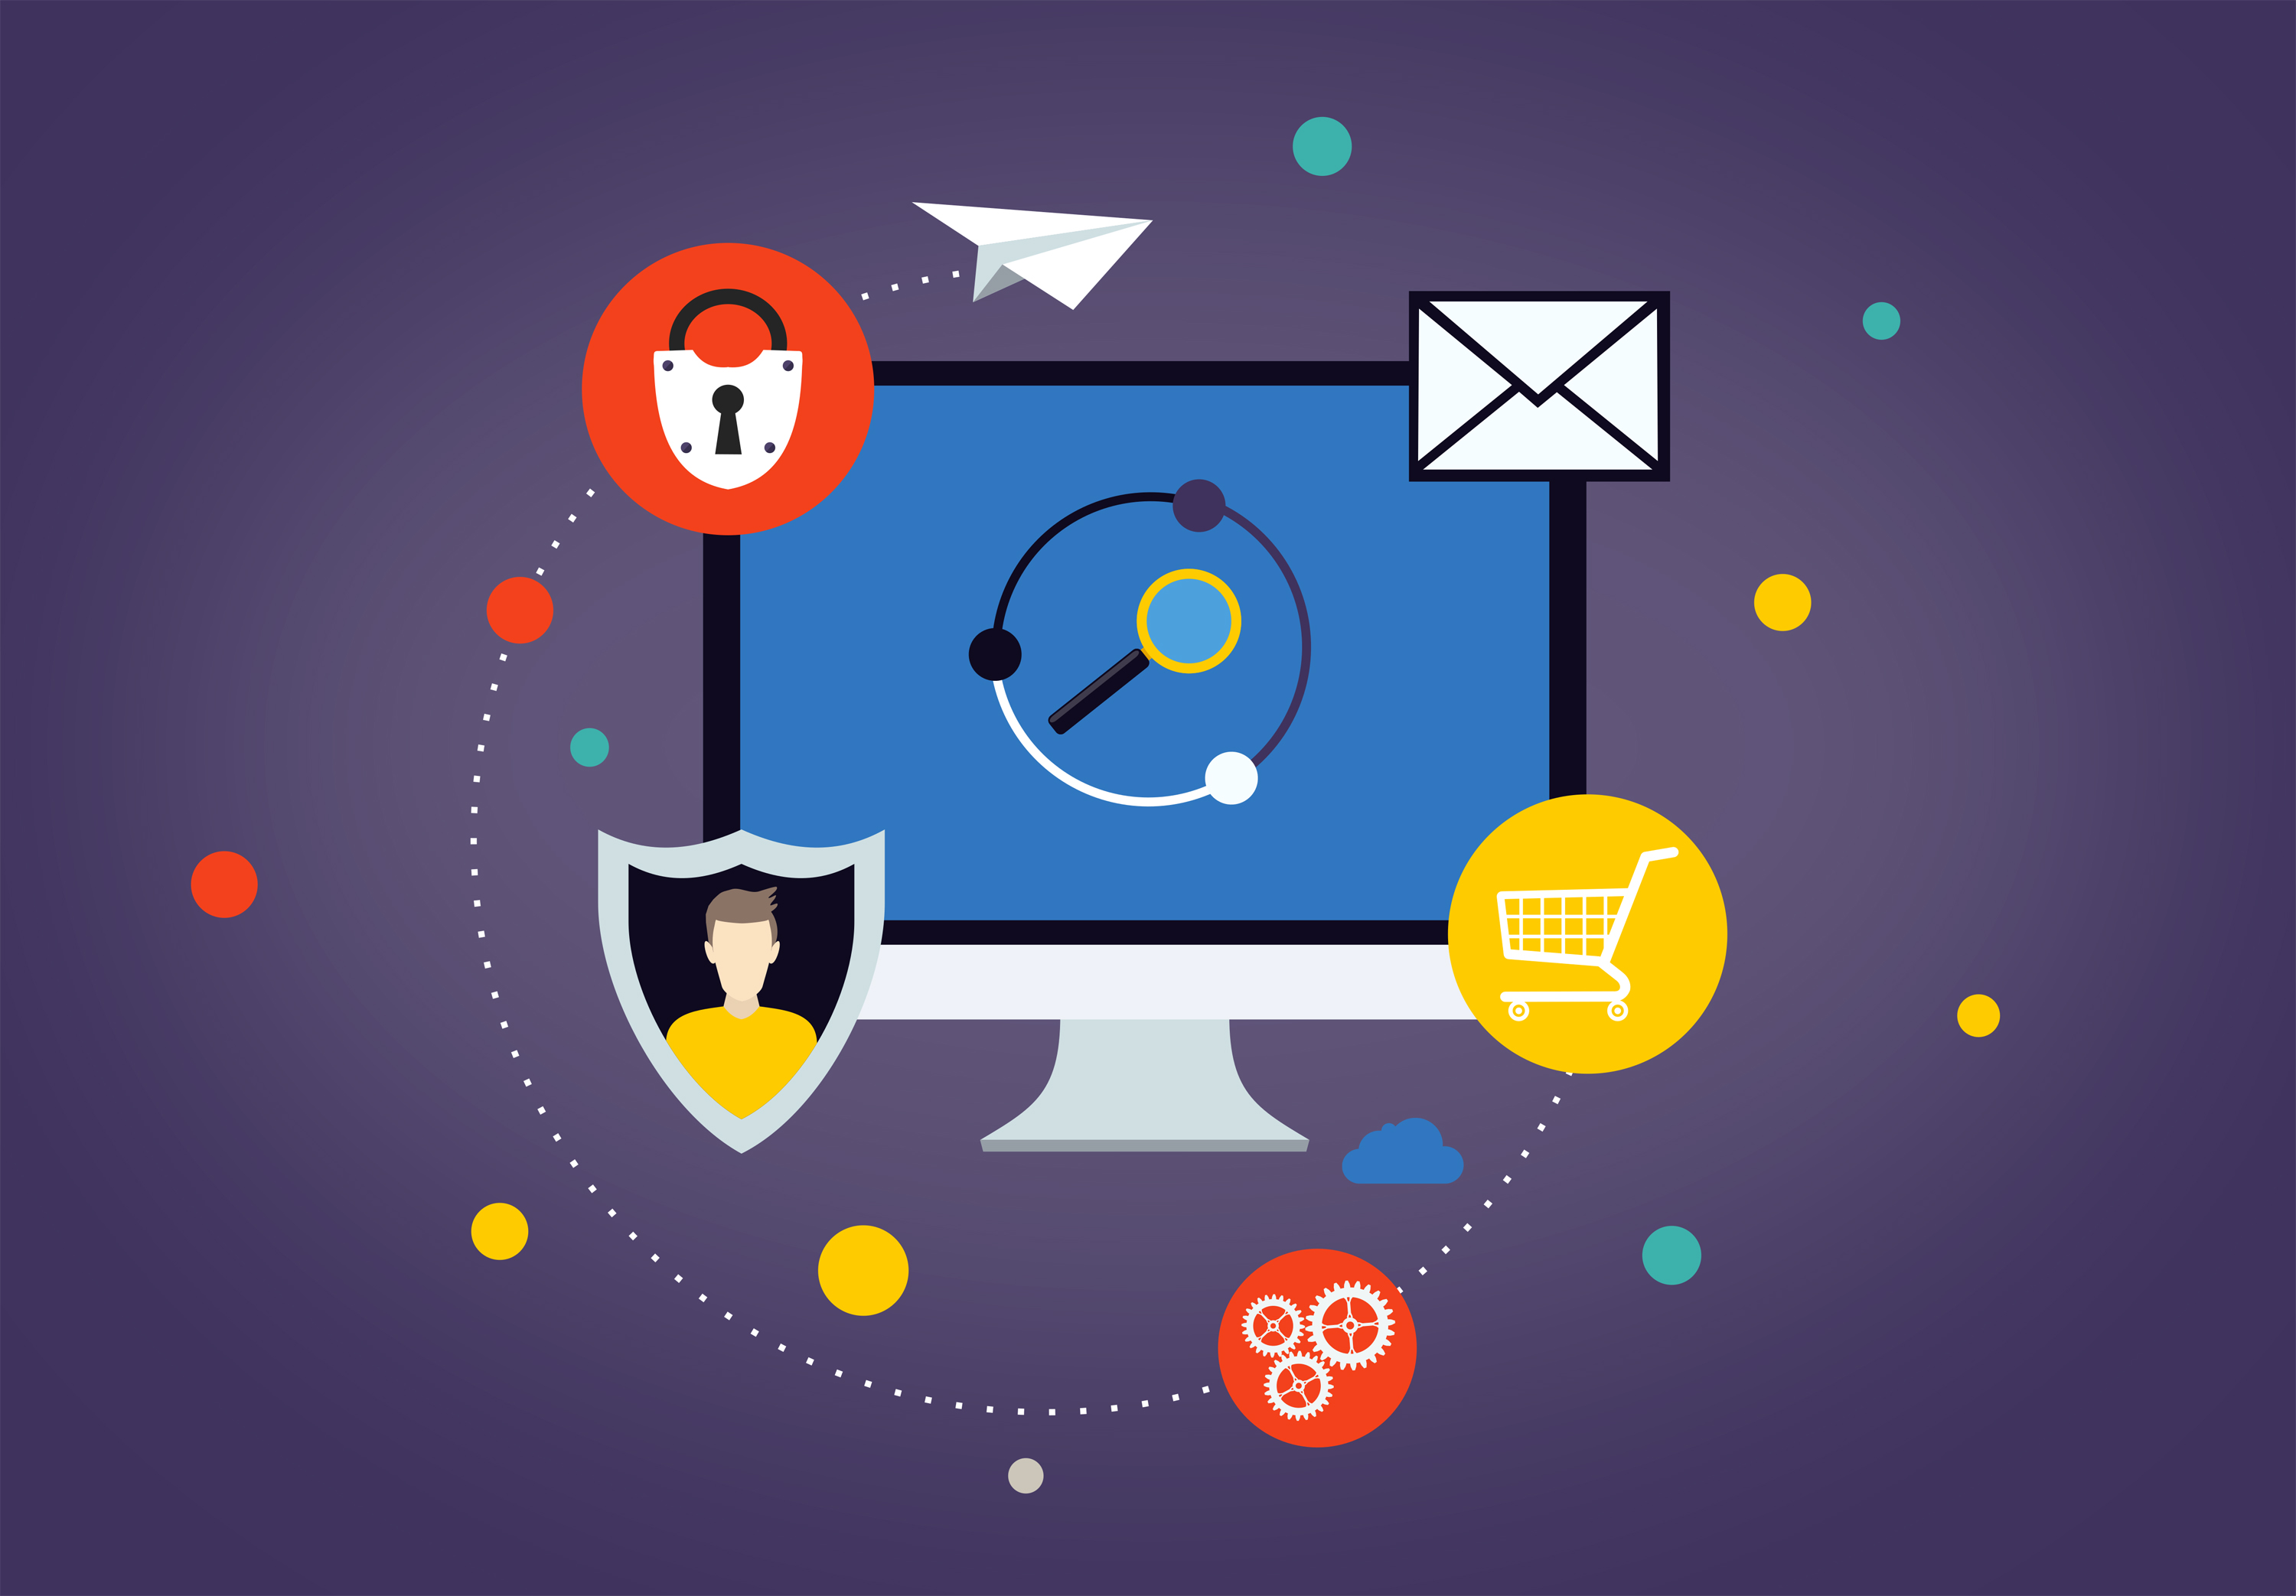 Cybersecurity concept - being safe online photo